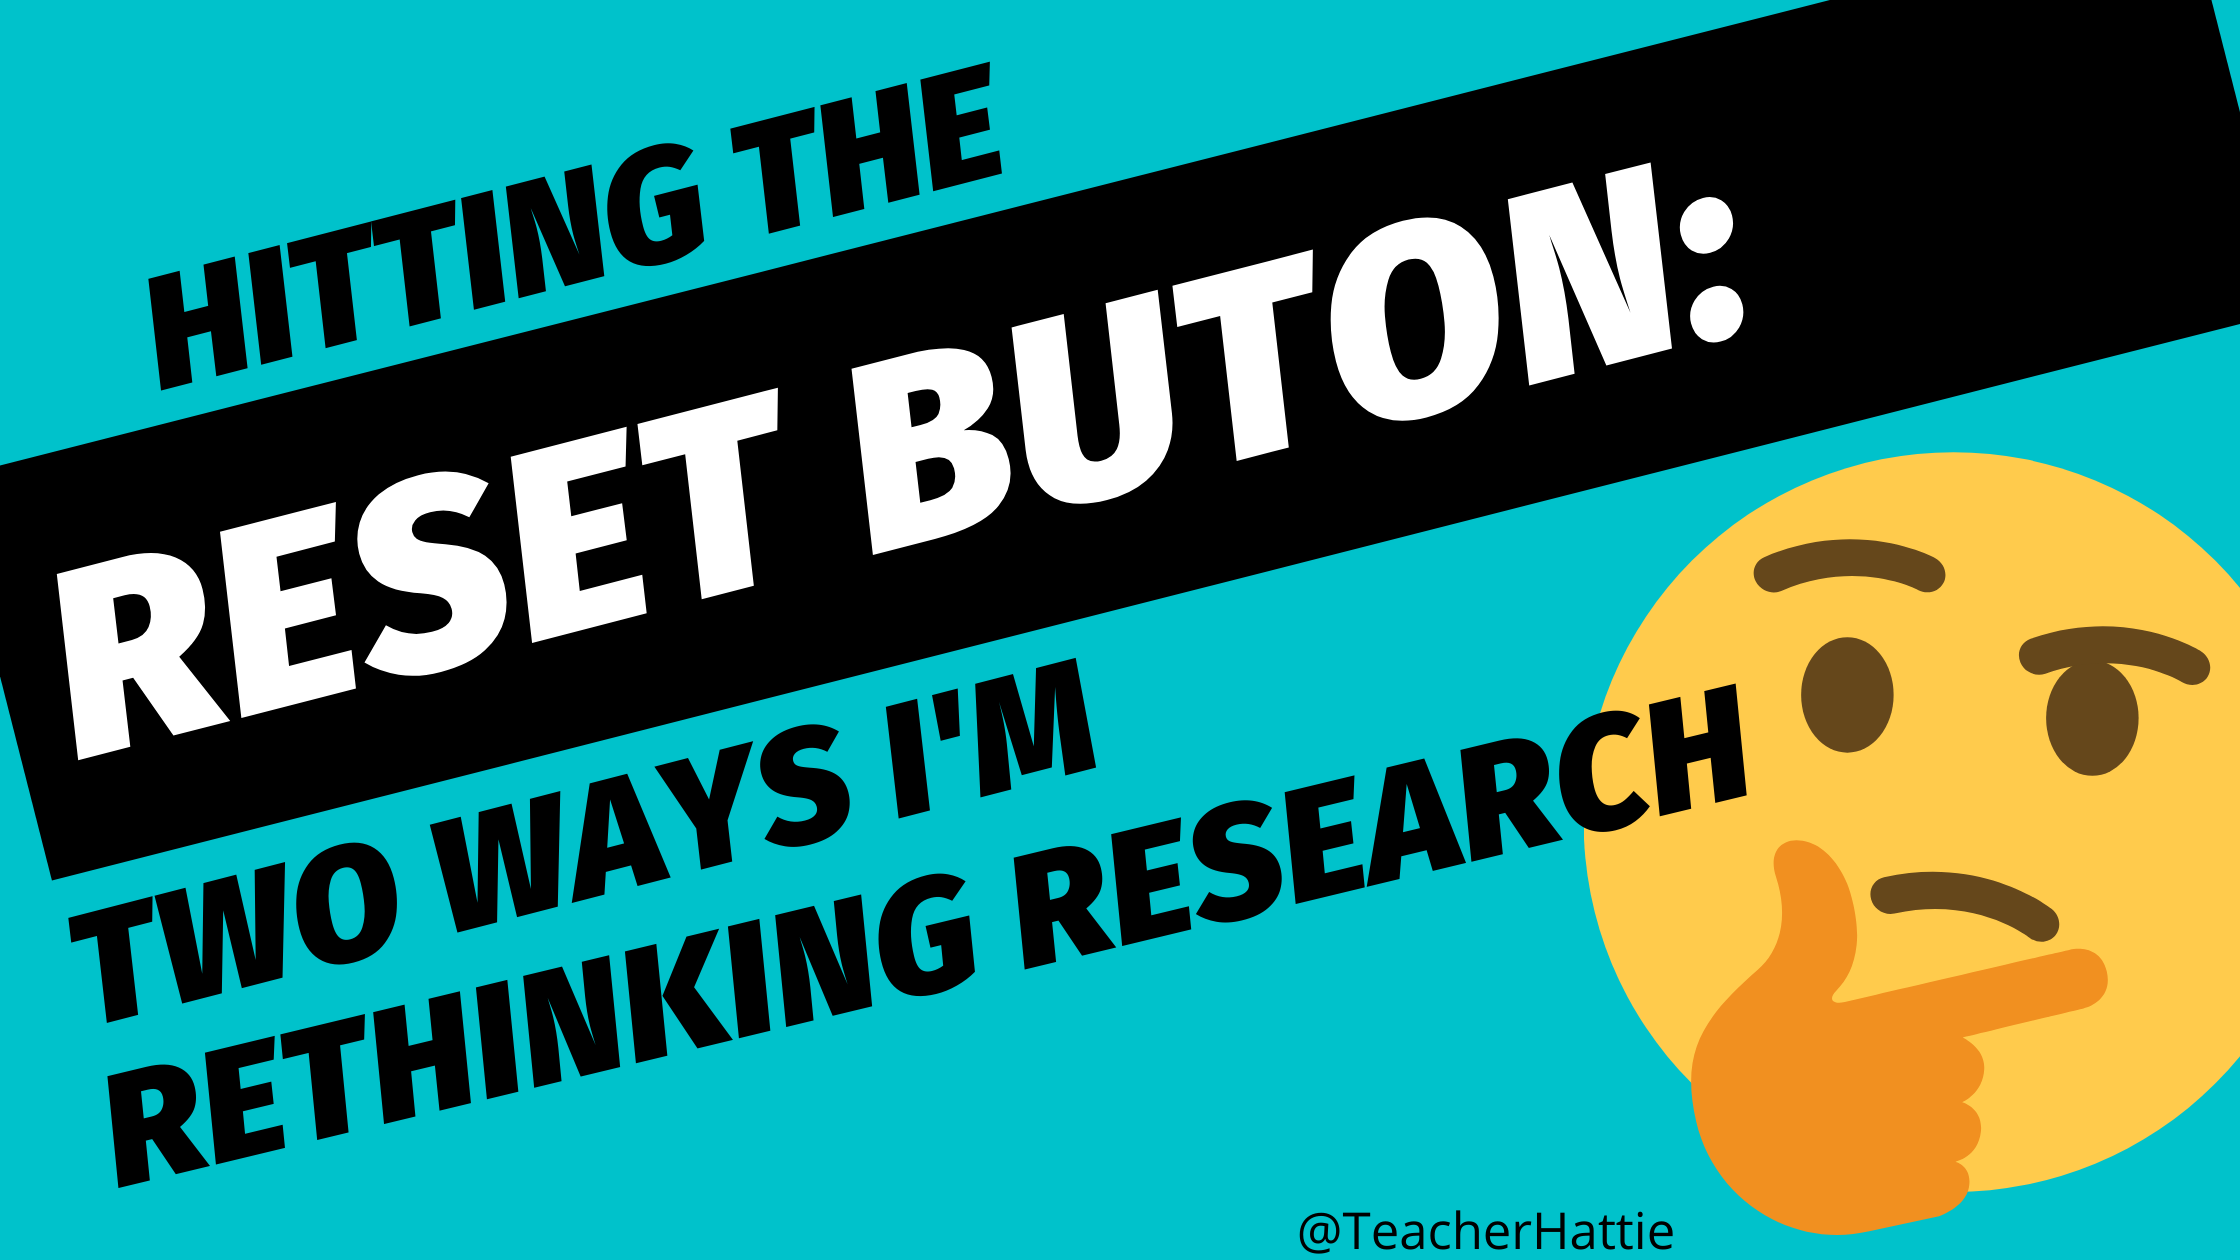 How Do We Research? Two Ways I'm Hitting the Reset Button